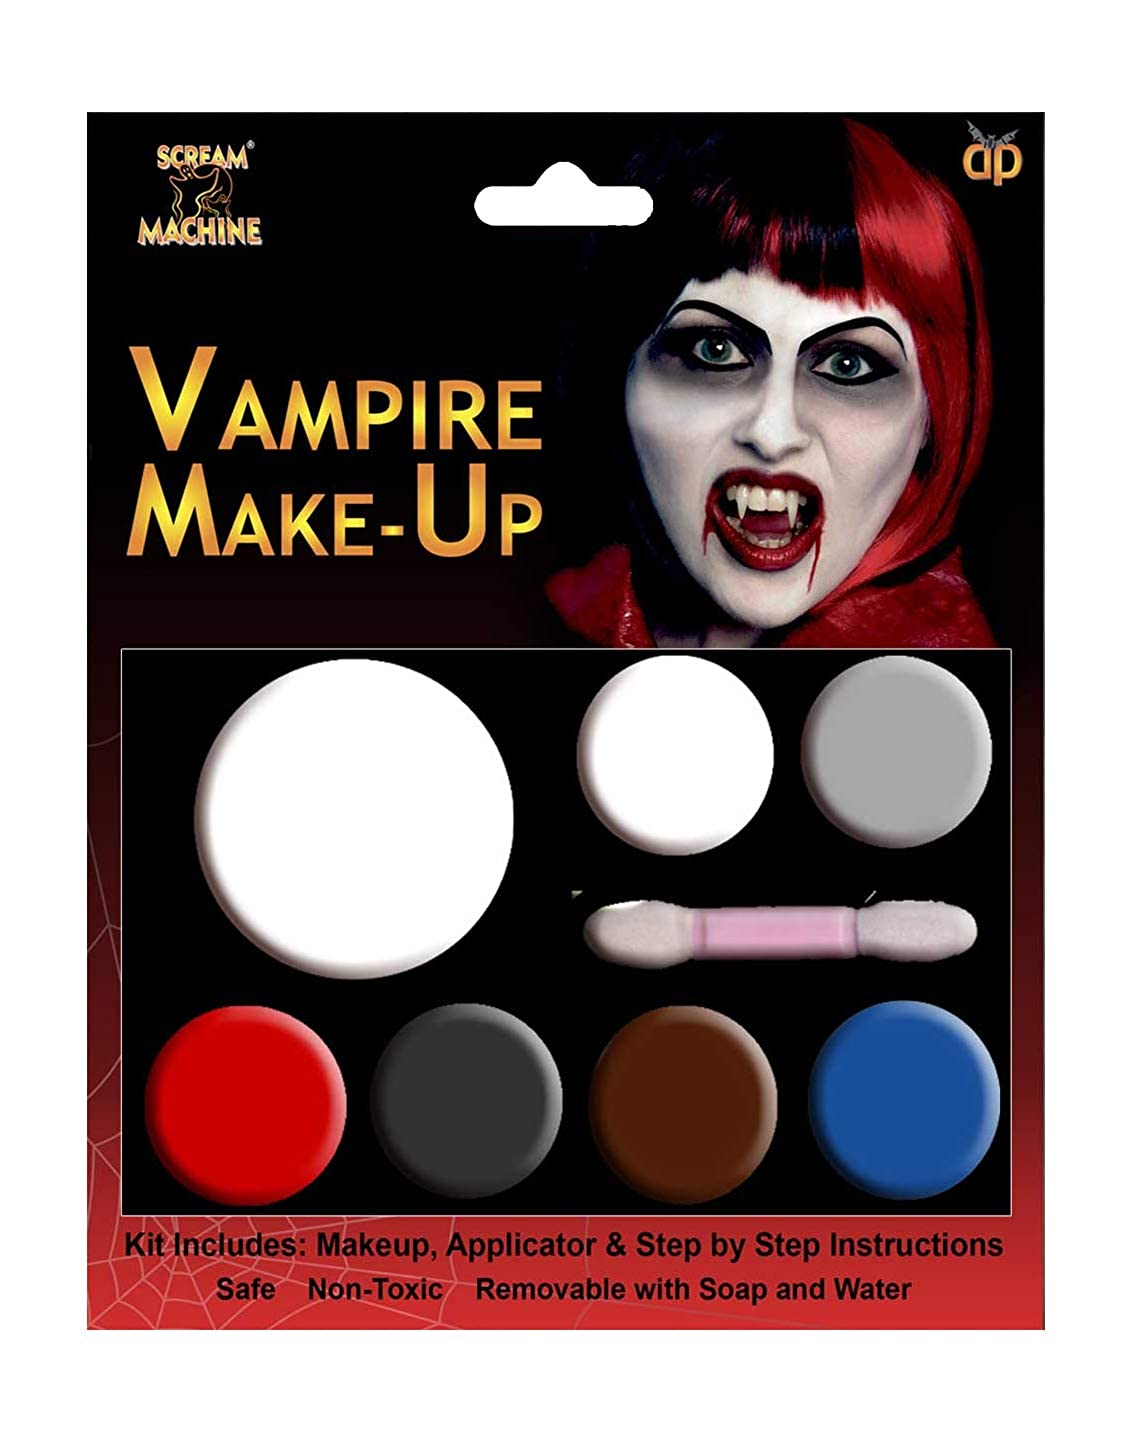 Halloween Makeup Devil.Halloween Makeup Make Up Face Paint Zombie Vampire Witch Devil Red White Black